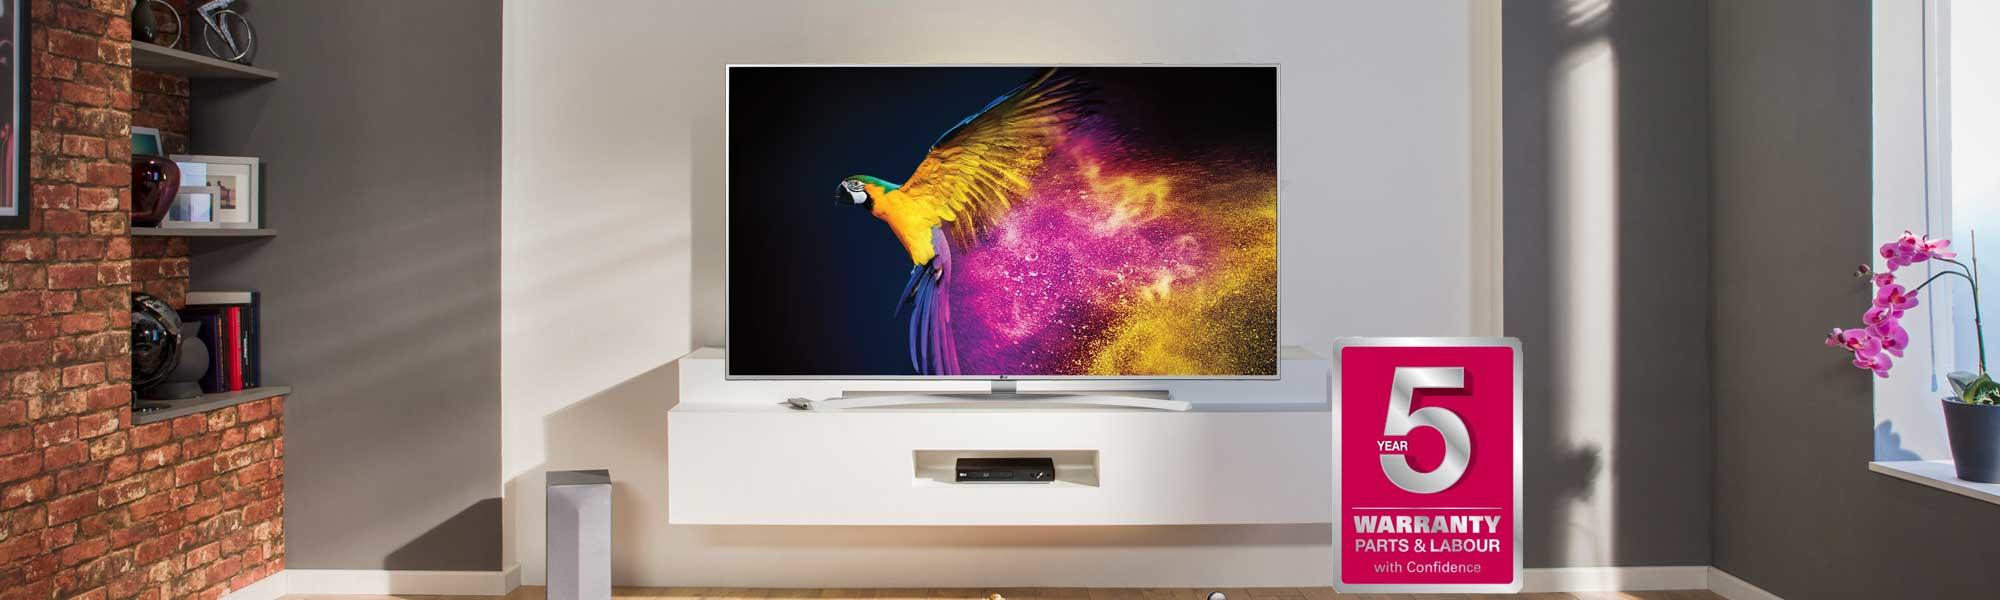 "LG 65UH770V 65"" 4K HDR Ultra HD LED TV"